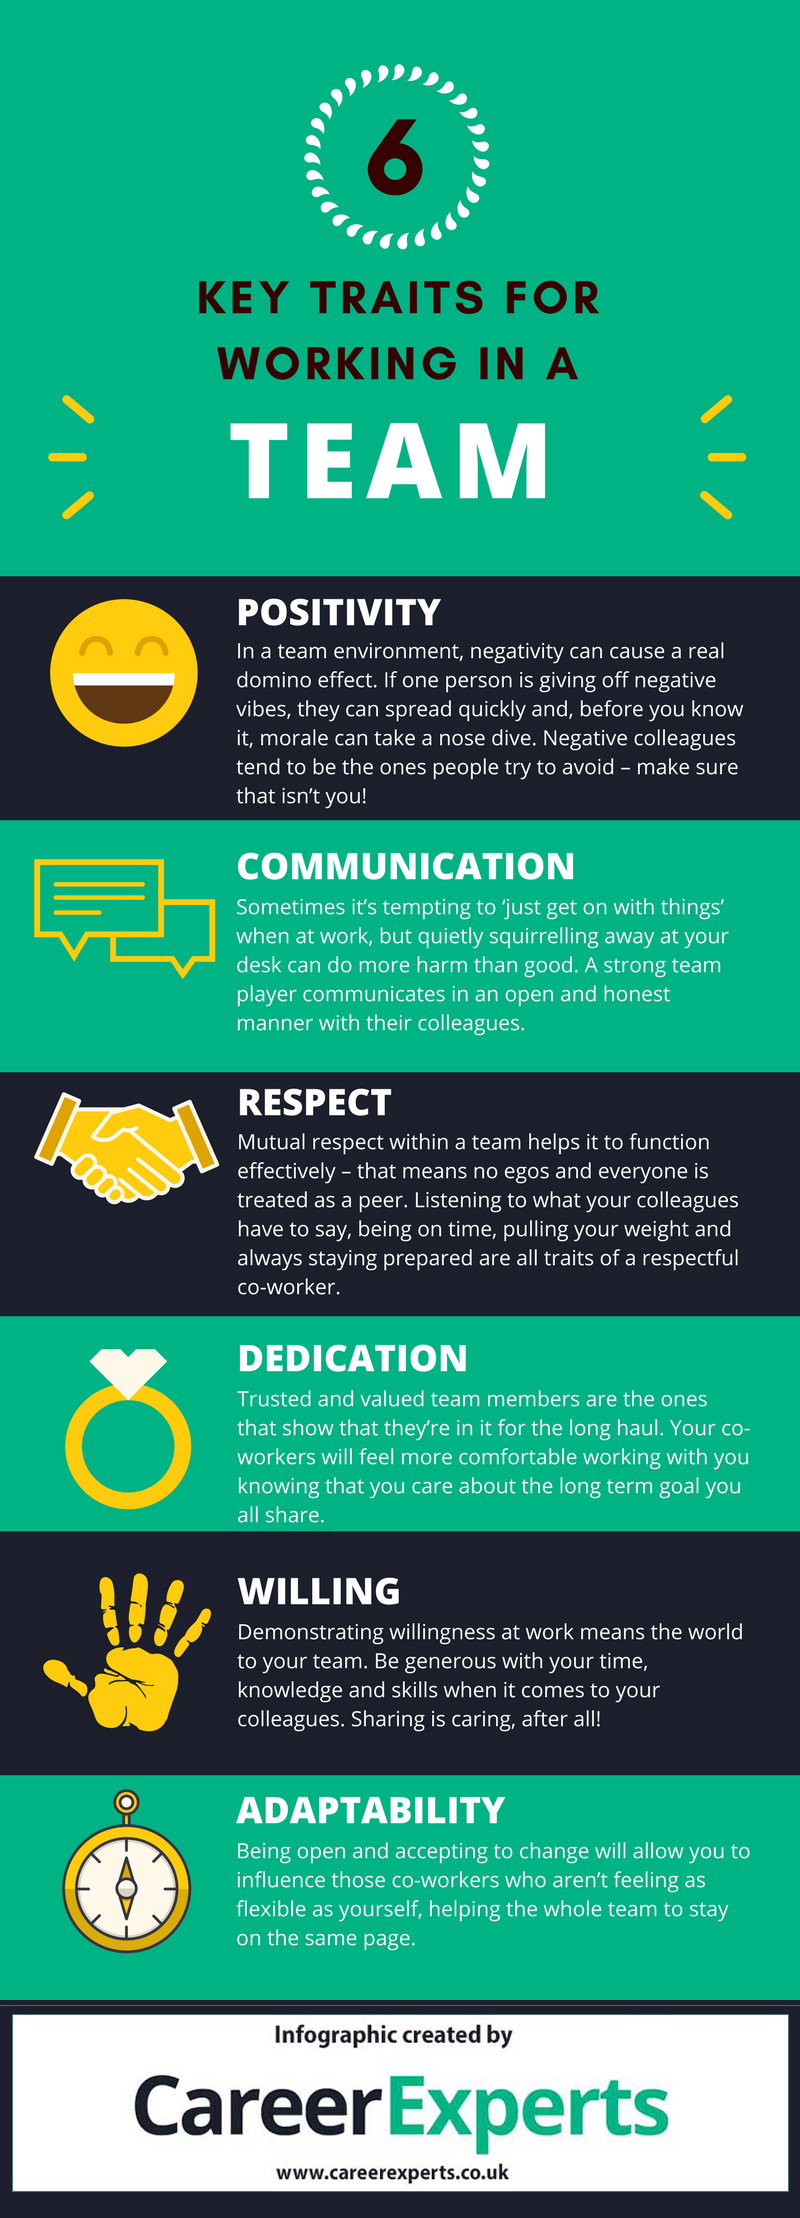 6 key traits for working in a team infographic